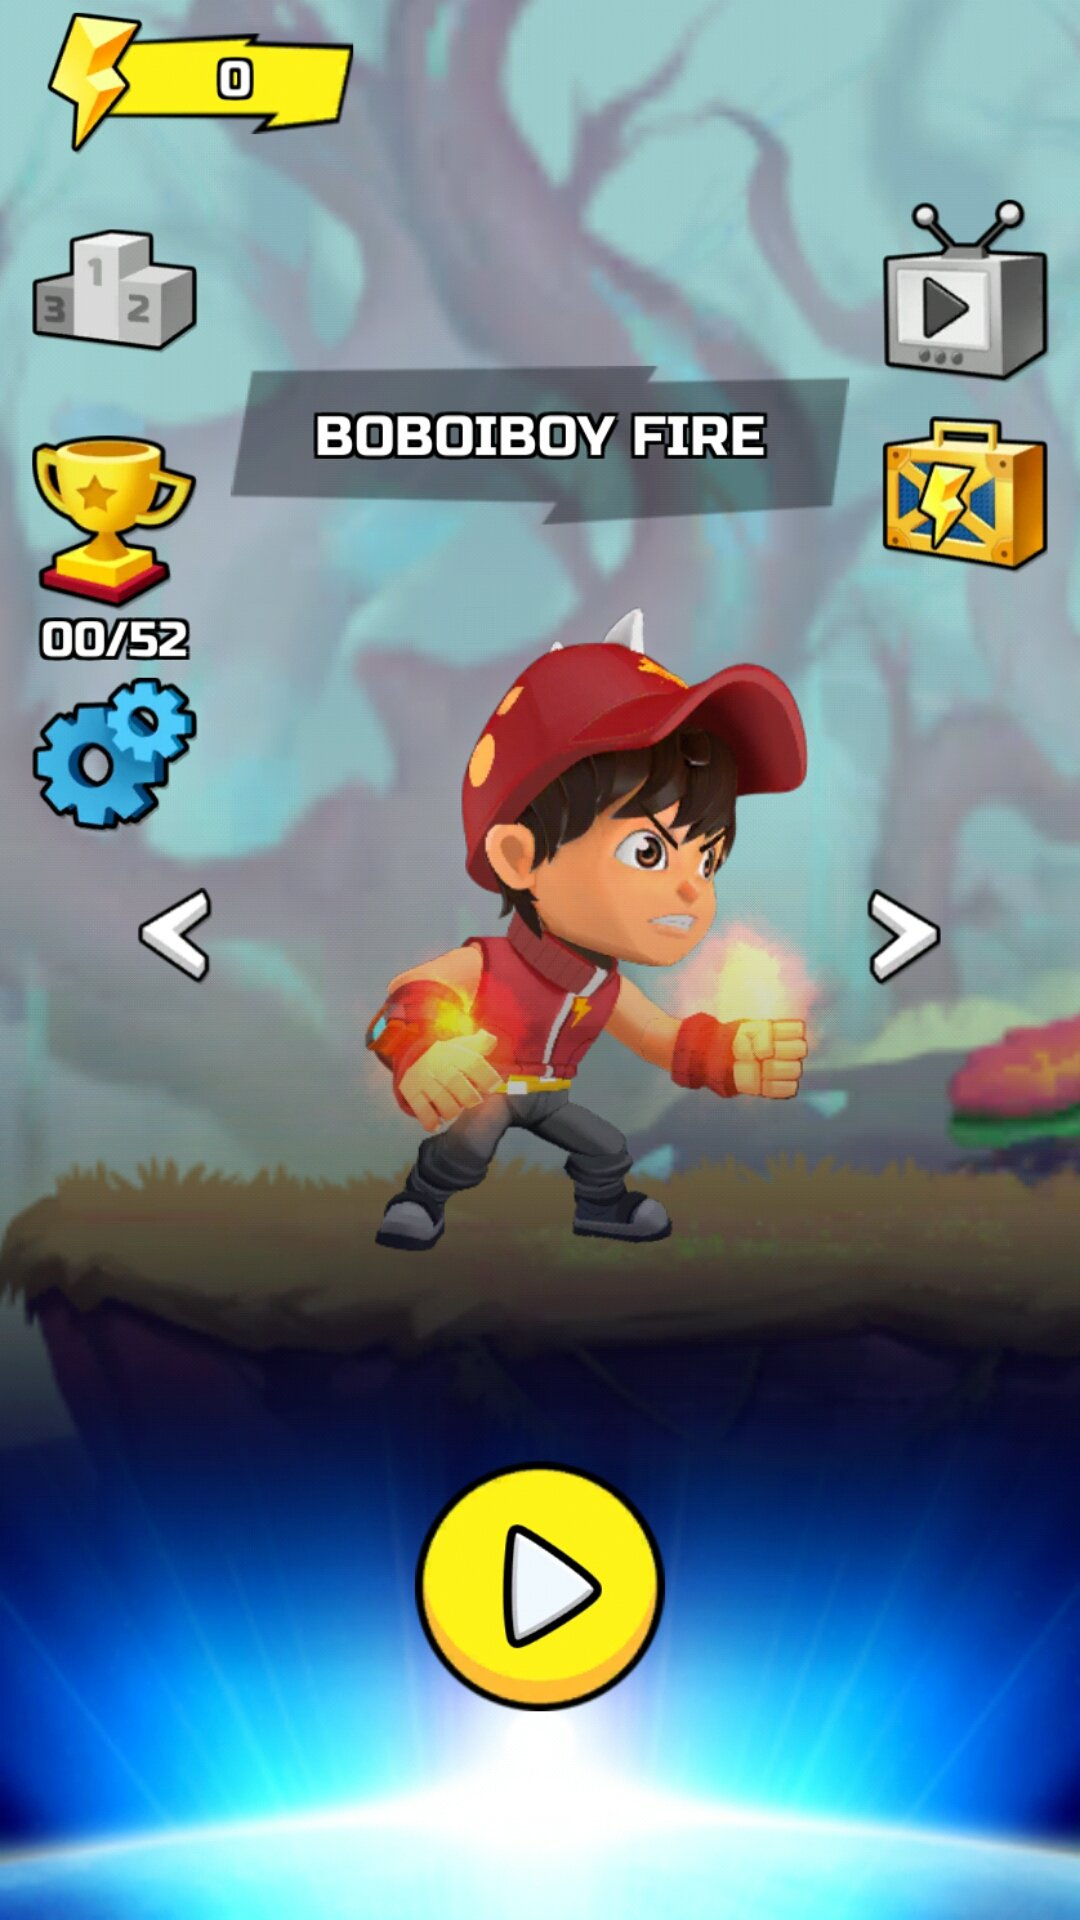 Boboiboy Galaxy Run Fight Aliens To Defend Earth Android Games